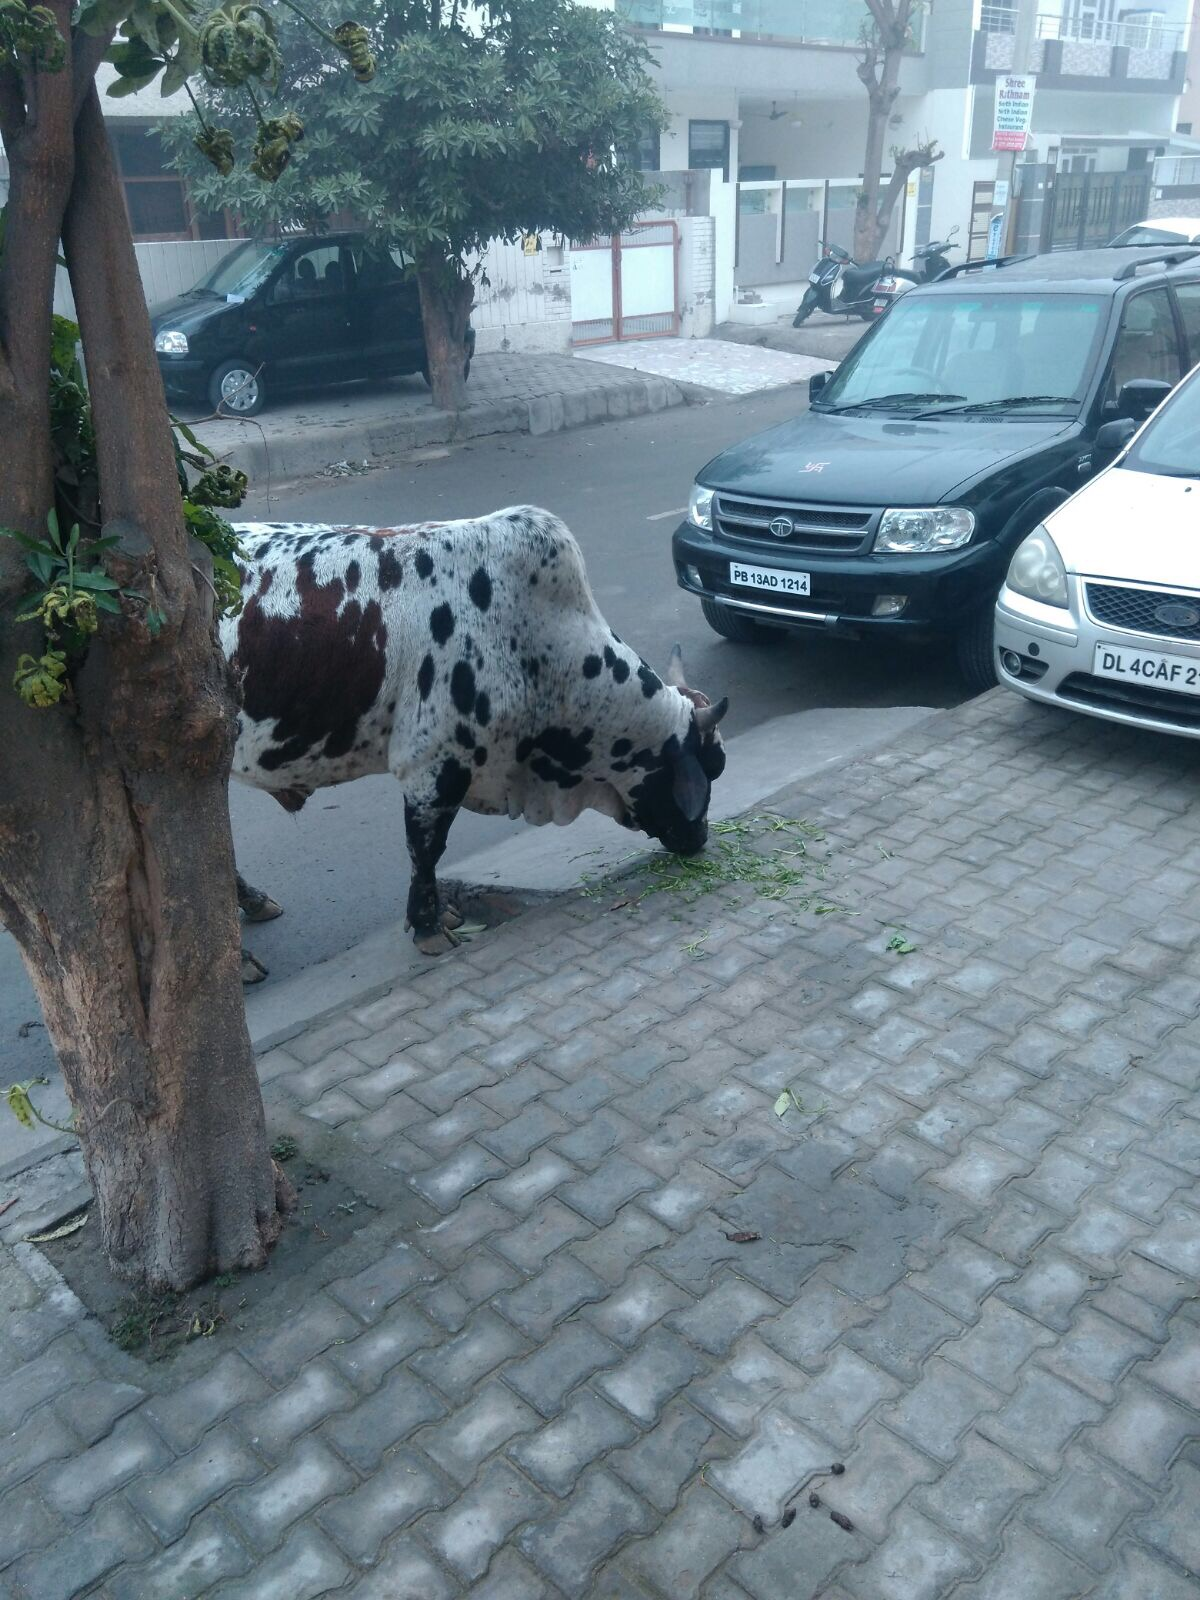 Cow wandering the streets in India